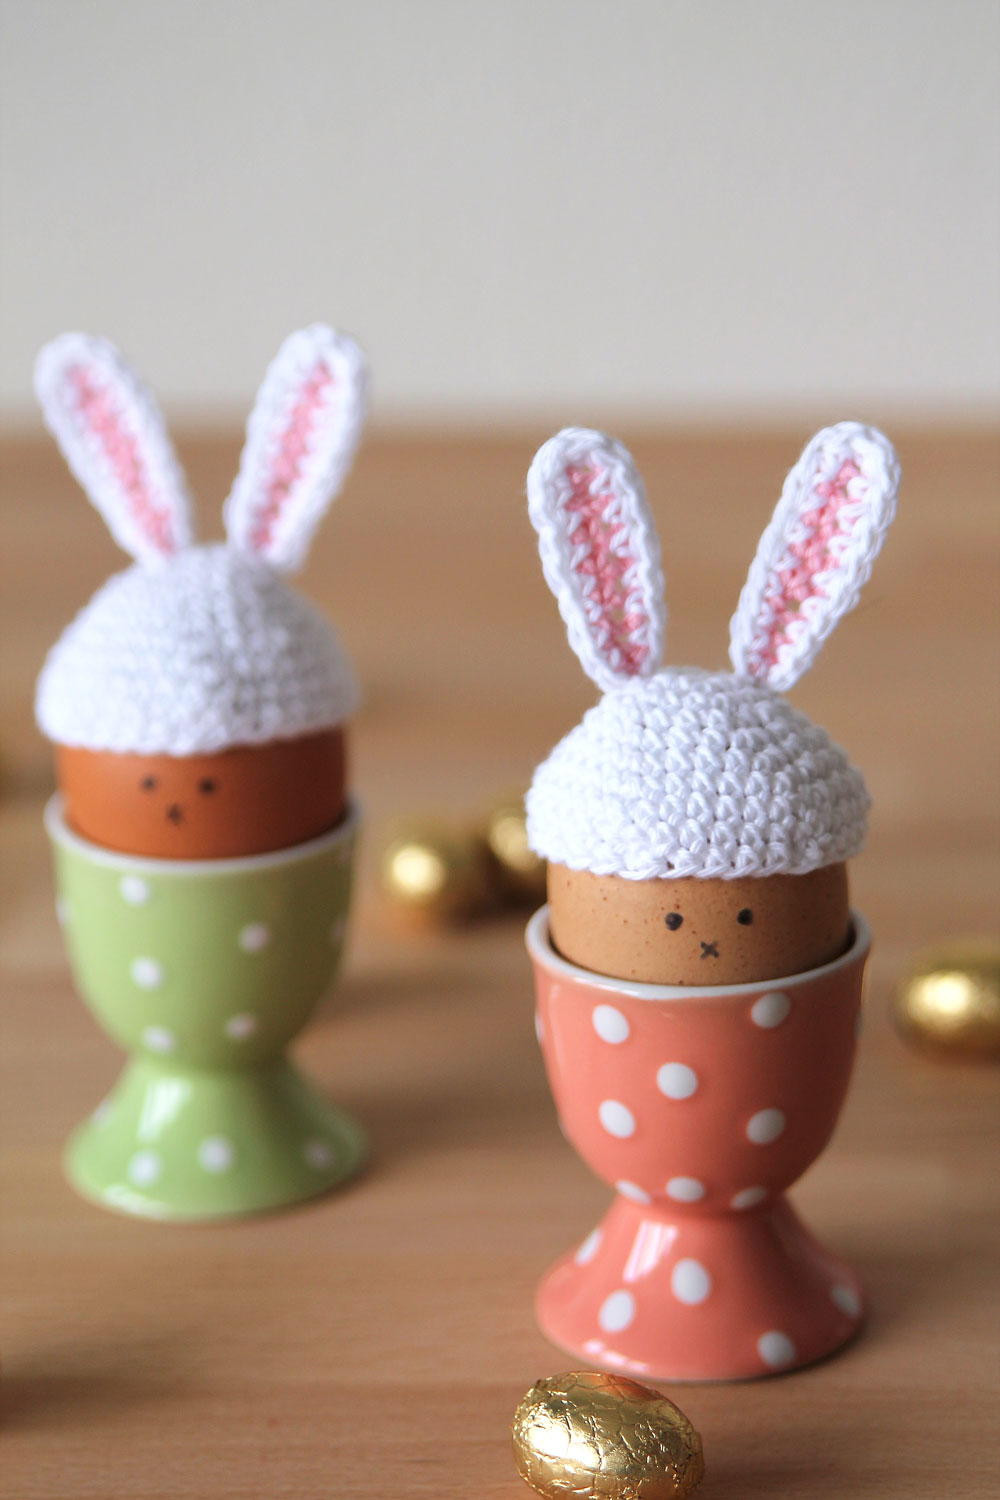 Crochet Easter Eggs Inspirational Tiny Crochet Easter Egg Bunny Hats Of Incredible 43 Ideas Crochet Easter Eggs